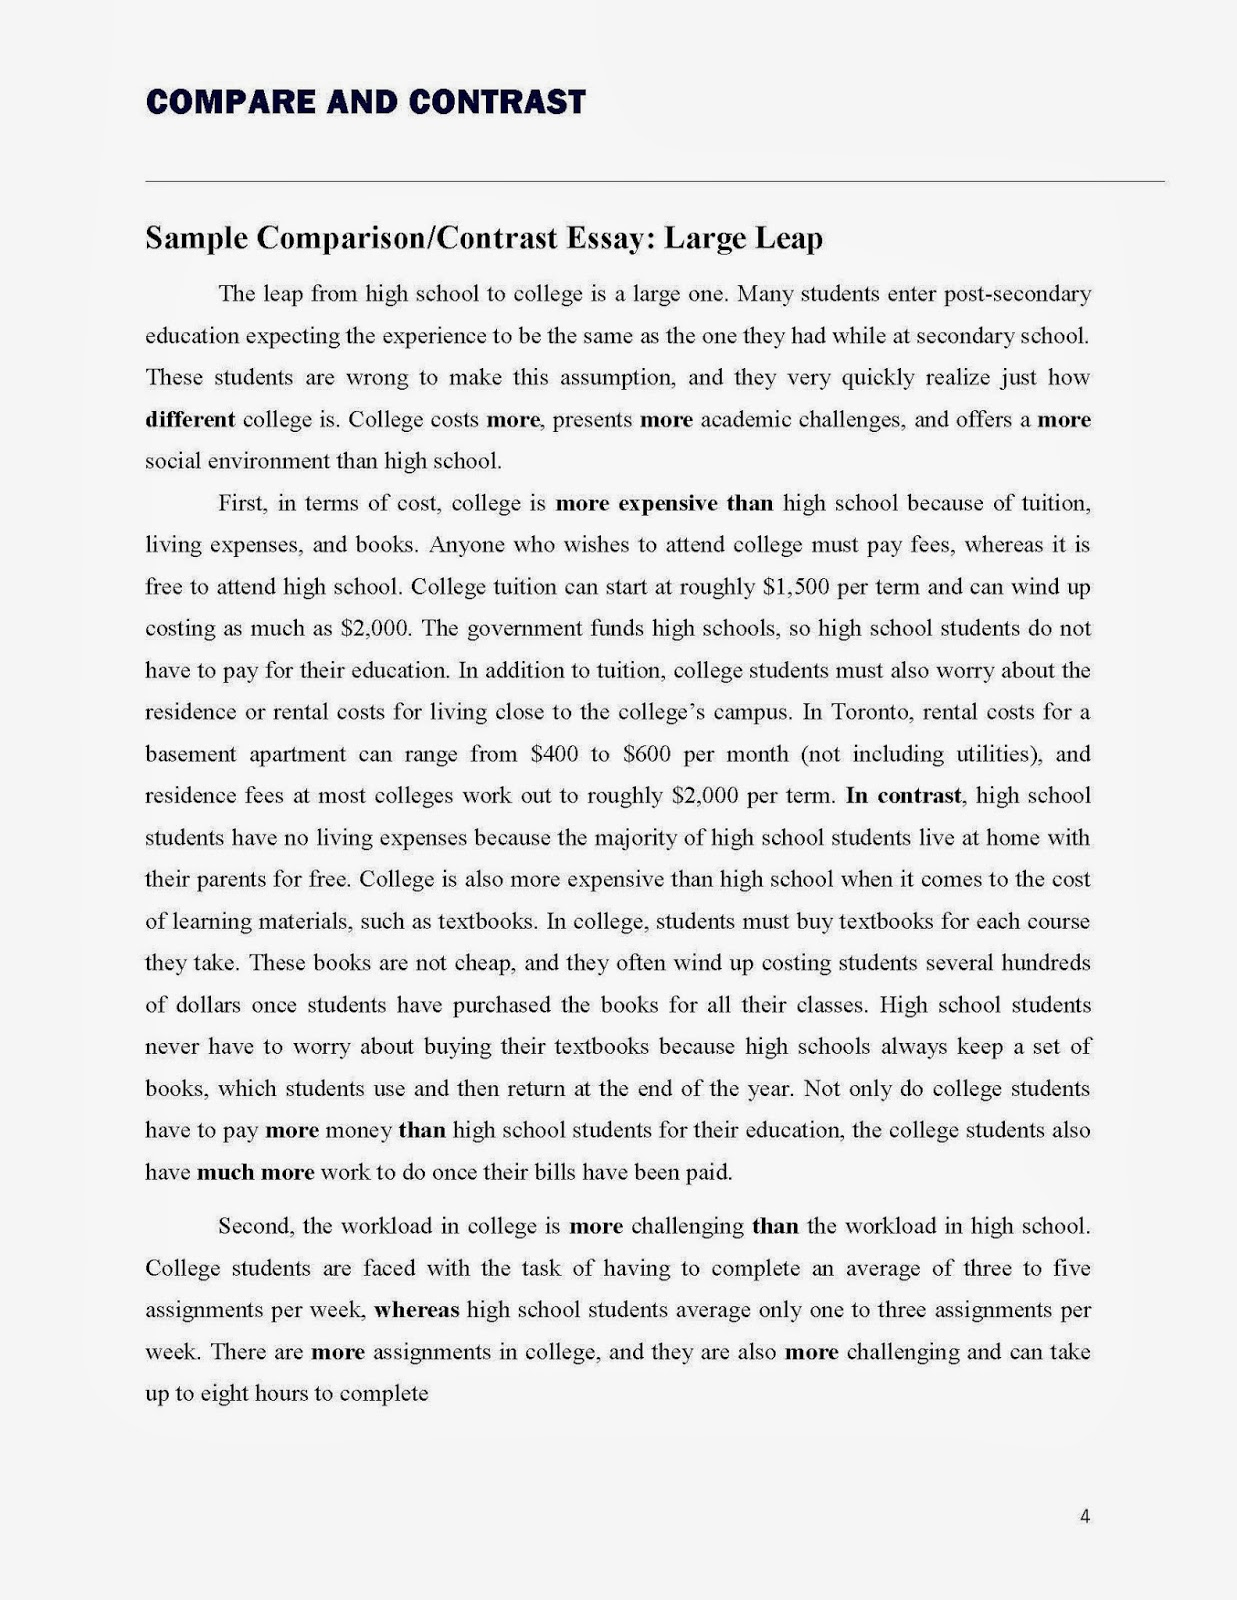 007 Essay Example How To Start Off Compare And Contrast Compare2band2bcontrast2bessay Page 4 Unusual A Do You Your Full